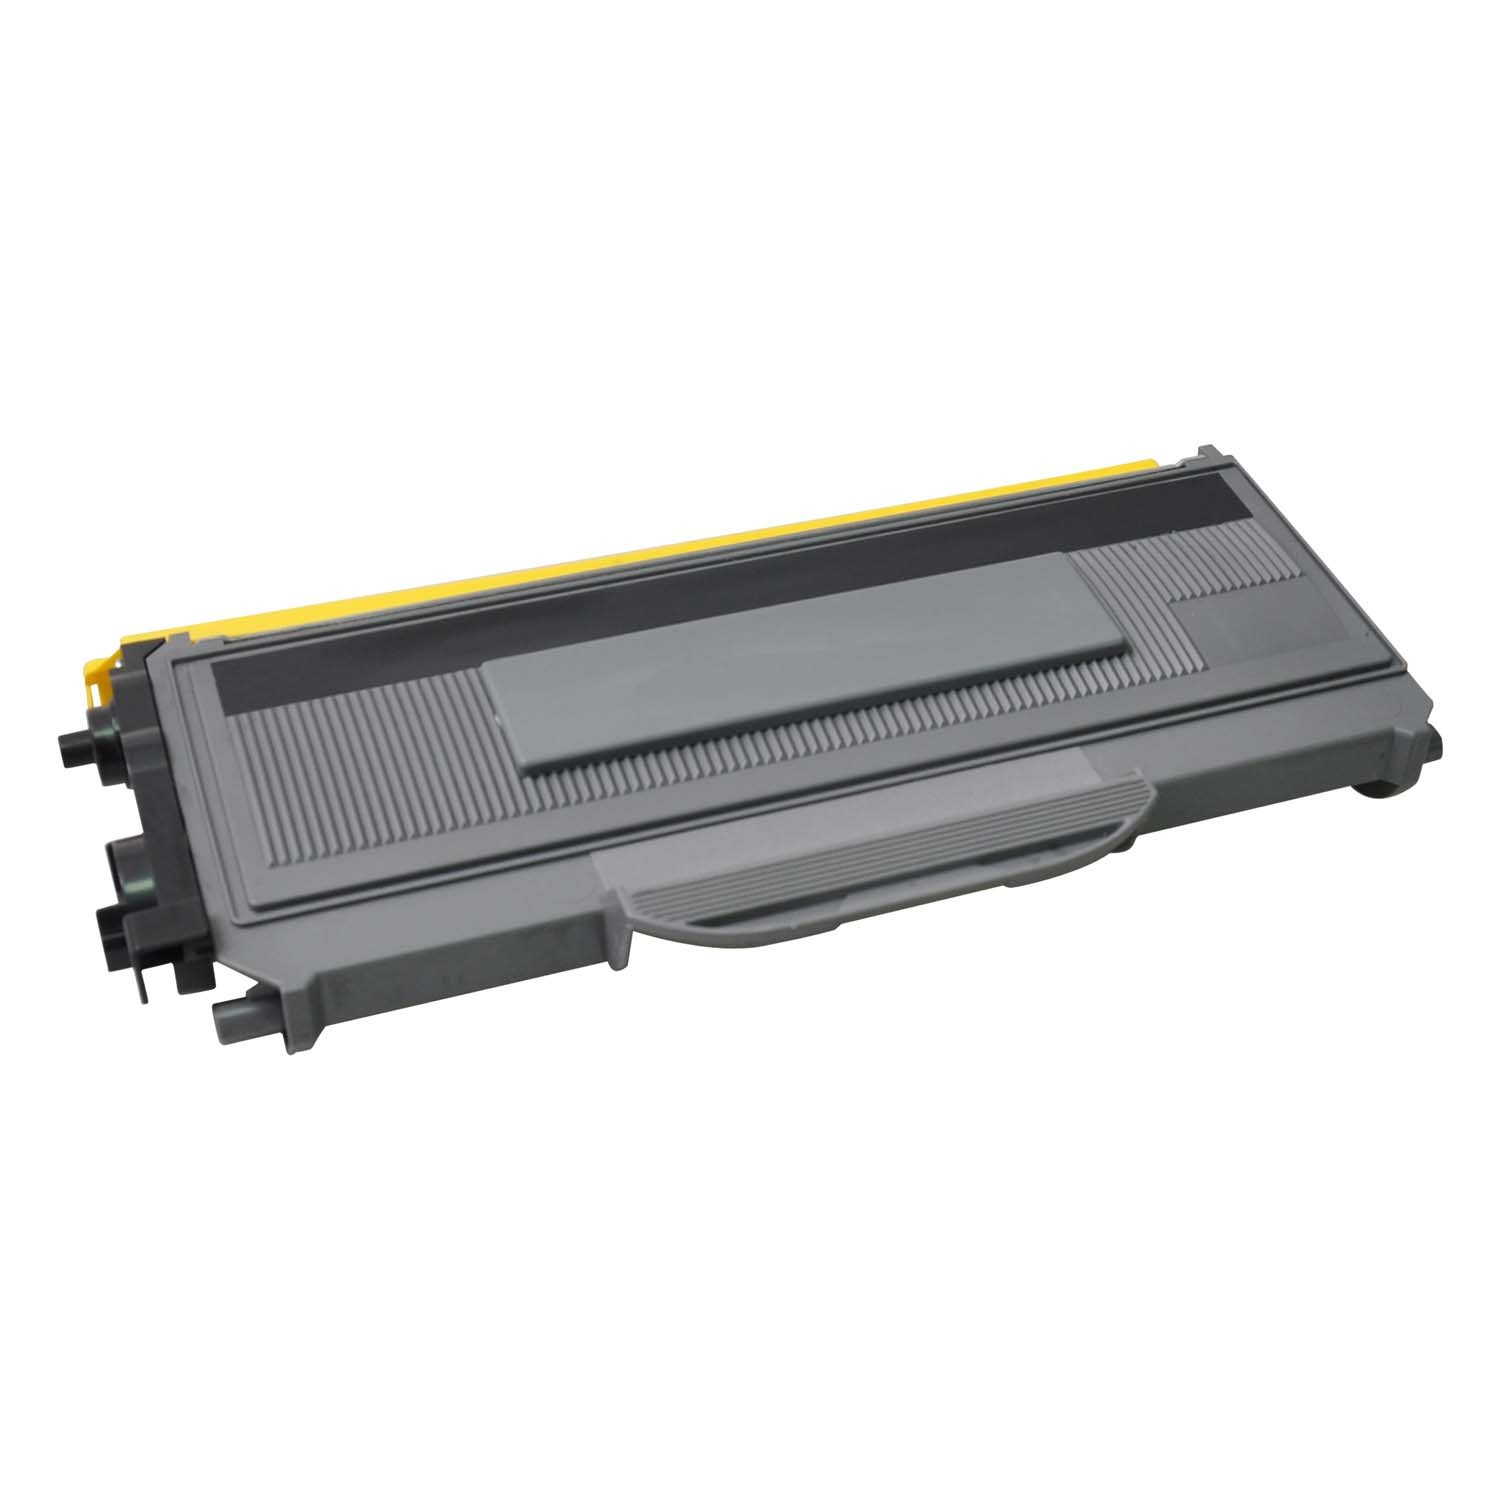 V7 Toner for select Brother printers - Replaces TN2120-XXL